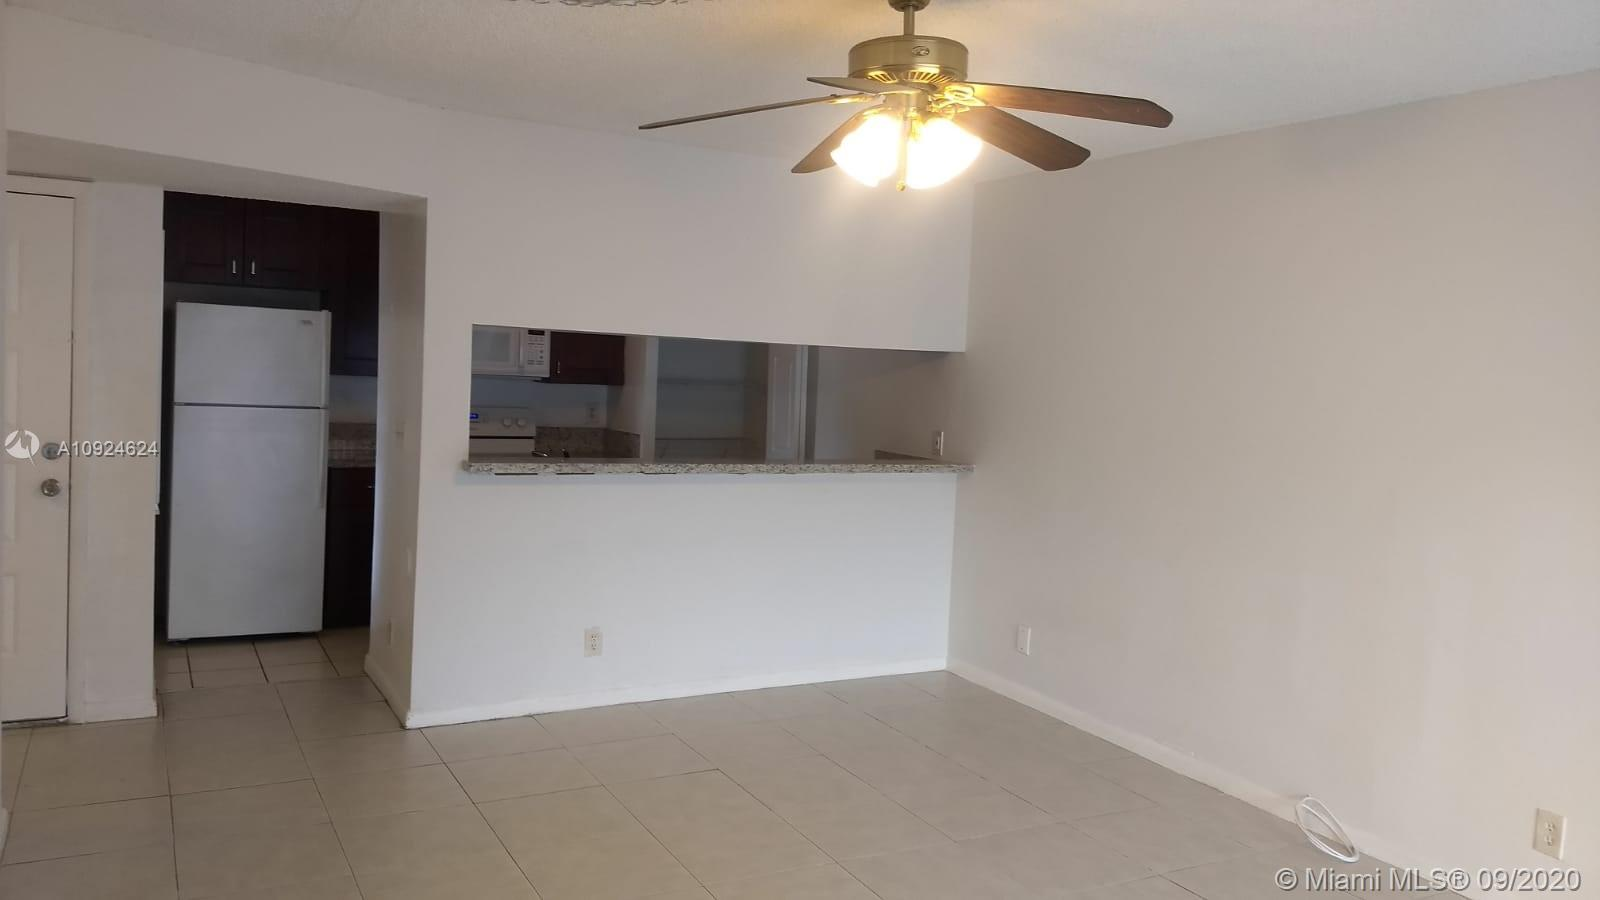 11570 NW 44 th ST Unit 11570, Coral Springs, Florida 33065